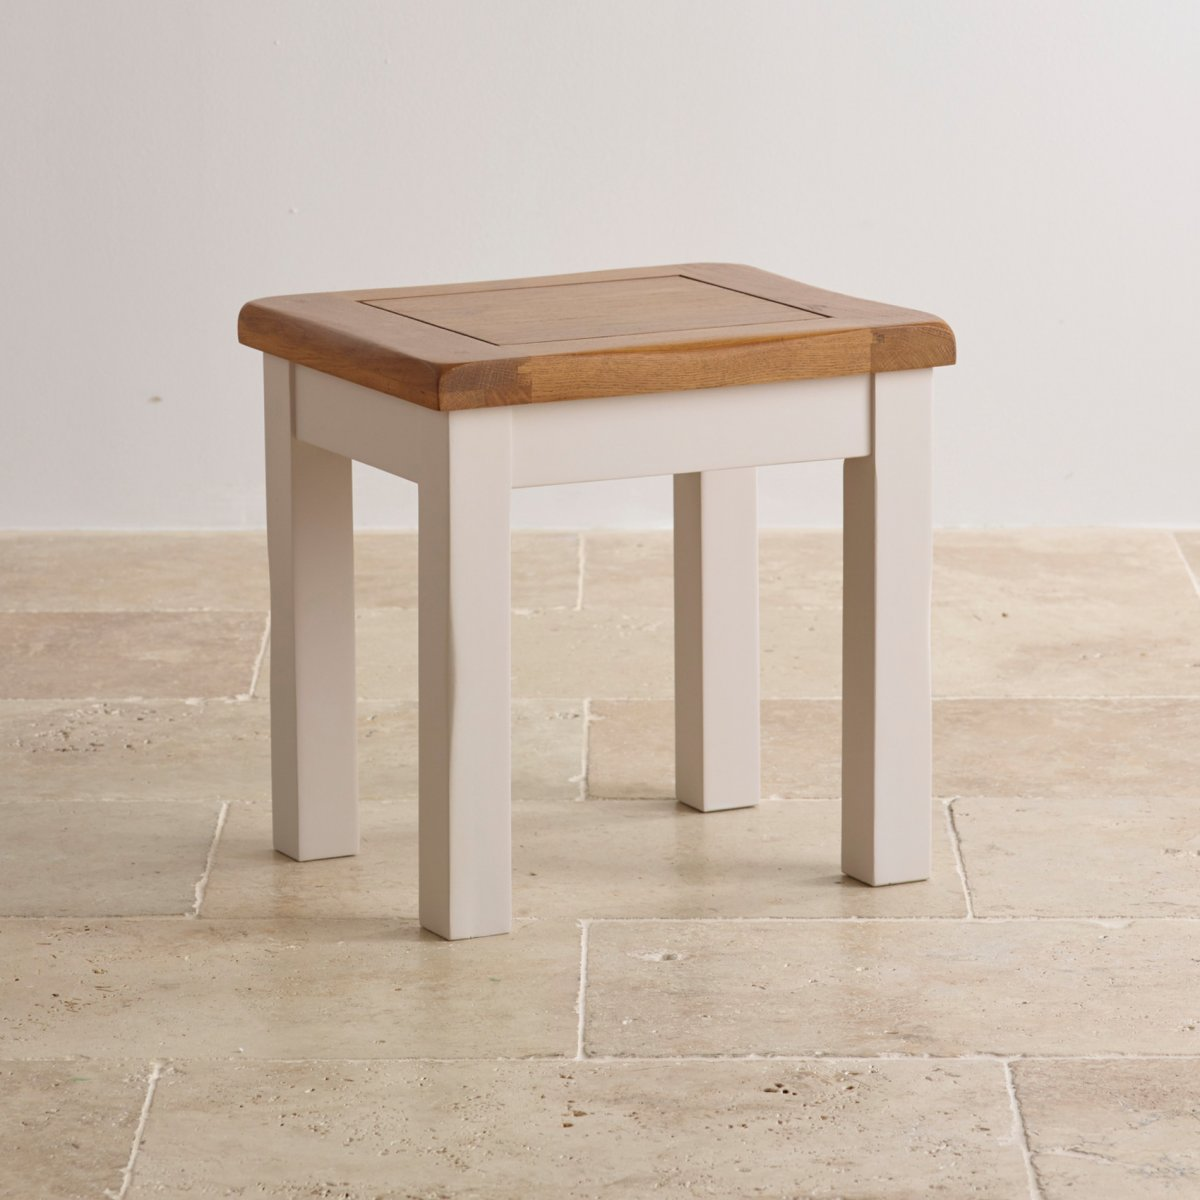 Dressing tables 100 solid hardwood oak furniture land custom delivery kemble rustic solid oak and painted dressing table stool geotapseo Images